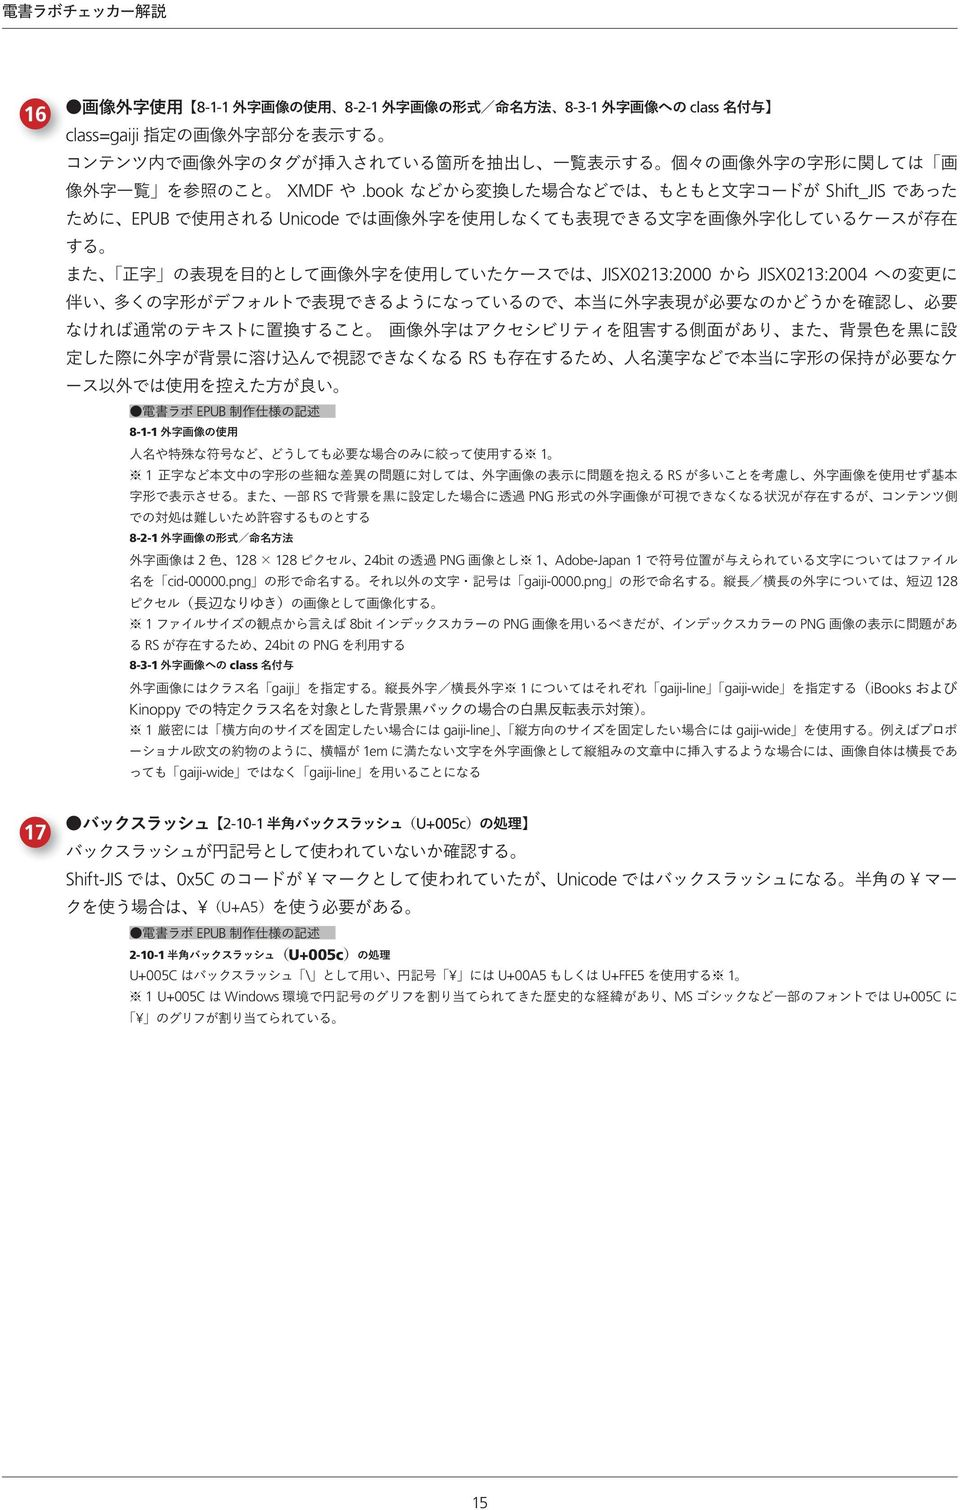 Adobe-Japan 1 cid-00000.png gaiji-0000.